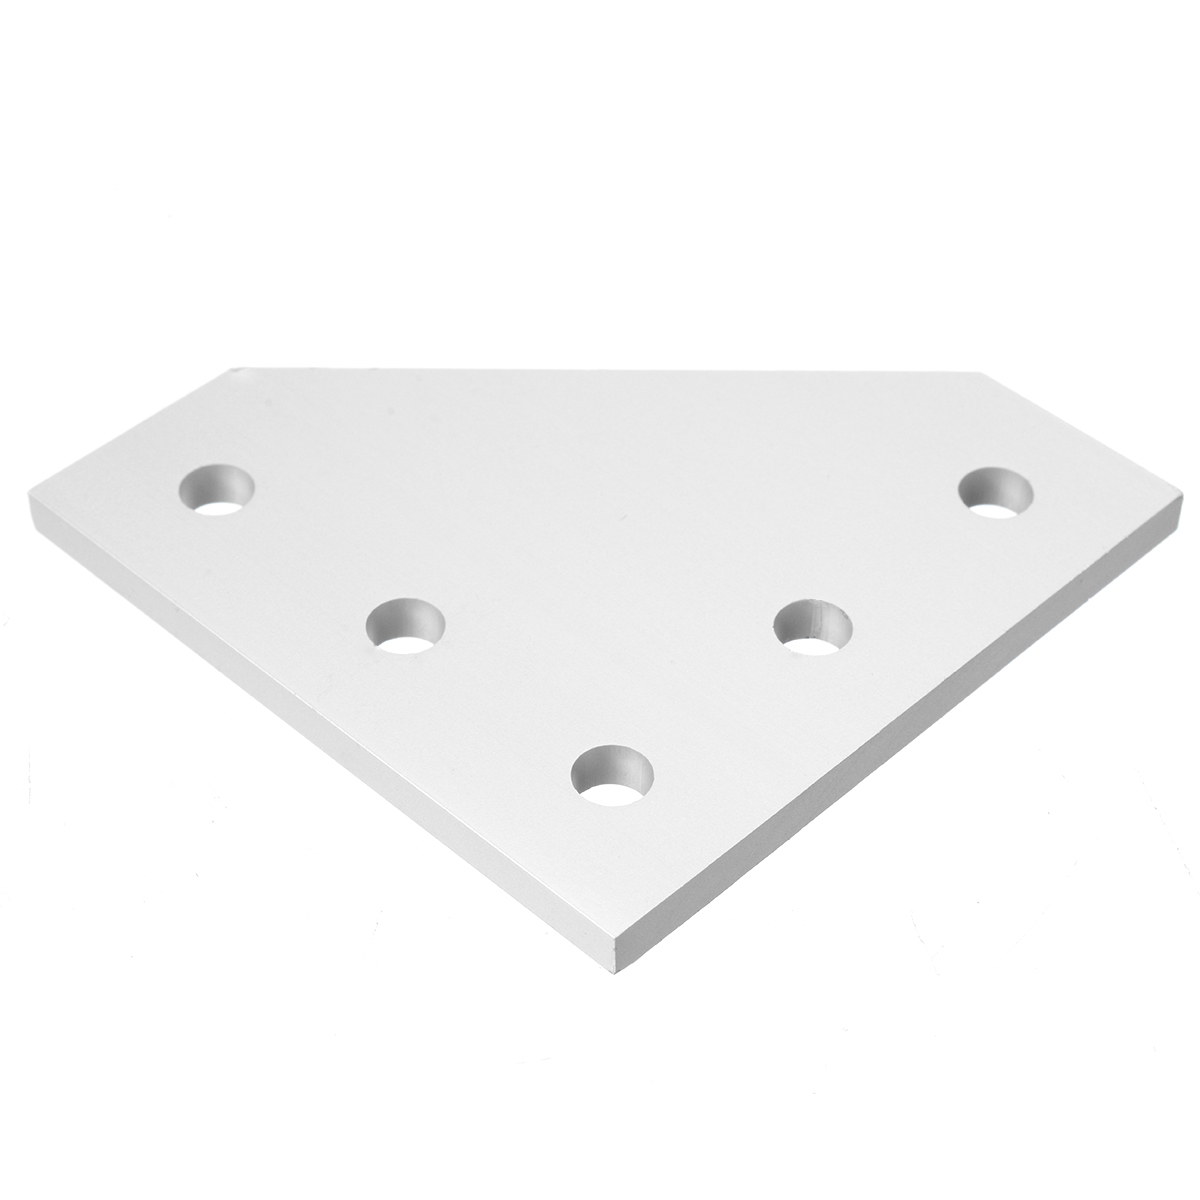 Mayitr 90 Degree Joint Board <font><b>Plate</b></font> <font><b>Corner</b></font> Angle Bracket Connection Joint Strip for Aluminum Profile <font><b>2020</b></font> with 5 Holes image